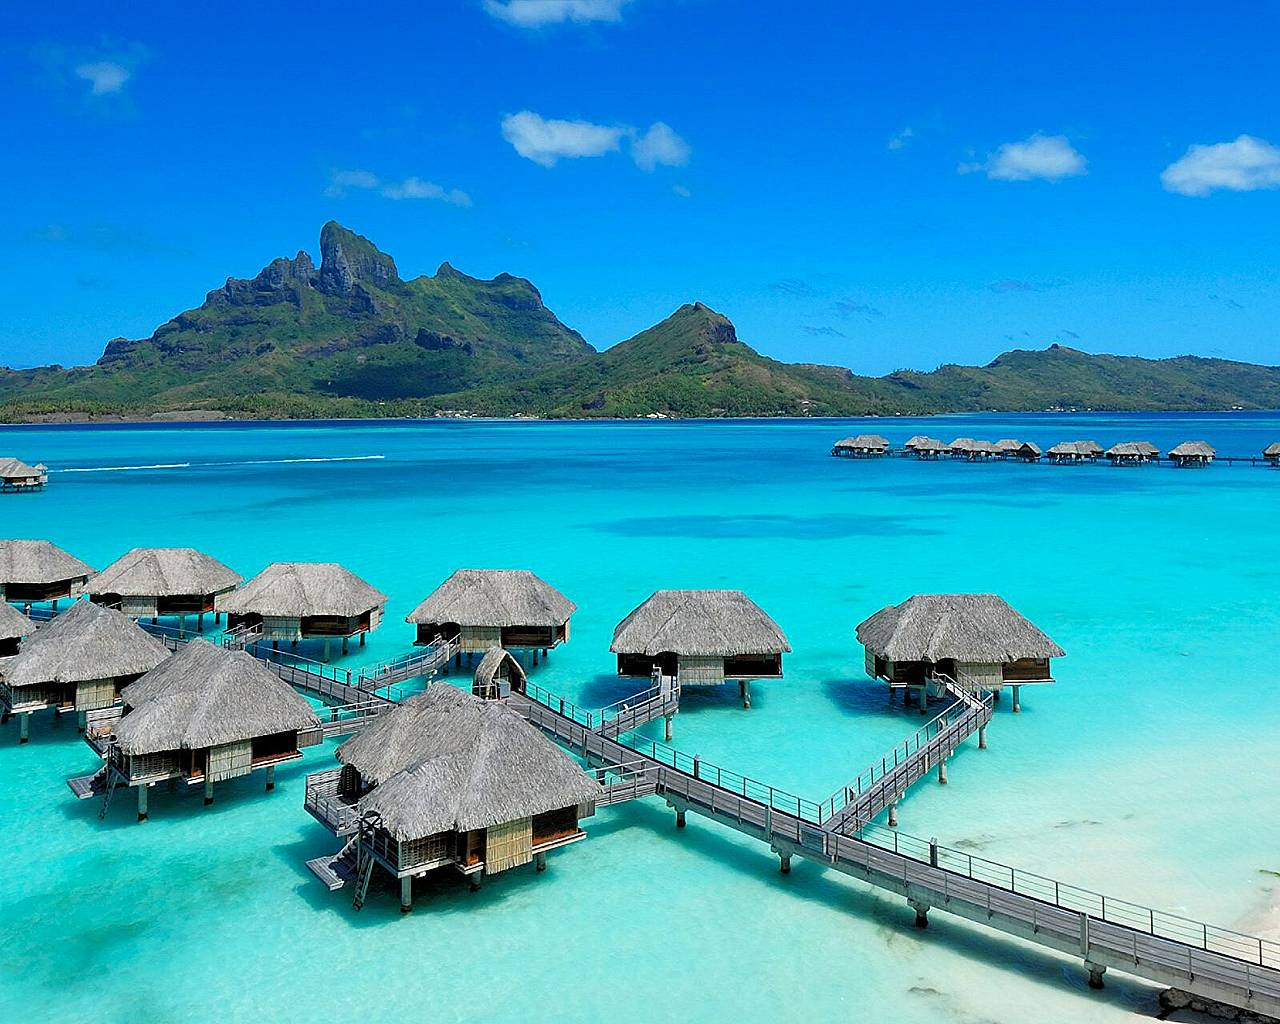 Tahiti Bora Paradise Luxury Accommodation Borabora Best Hotels Beach Huts Water Bungalow Holiday Resort